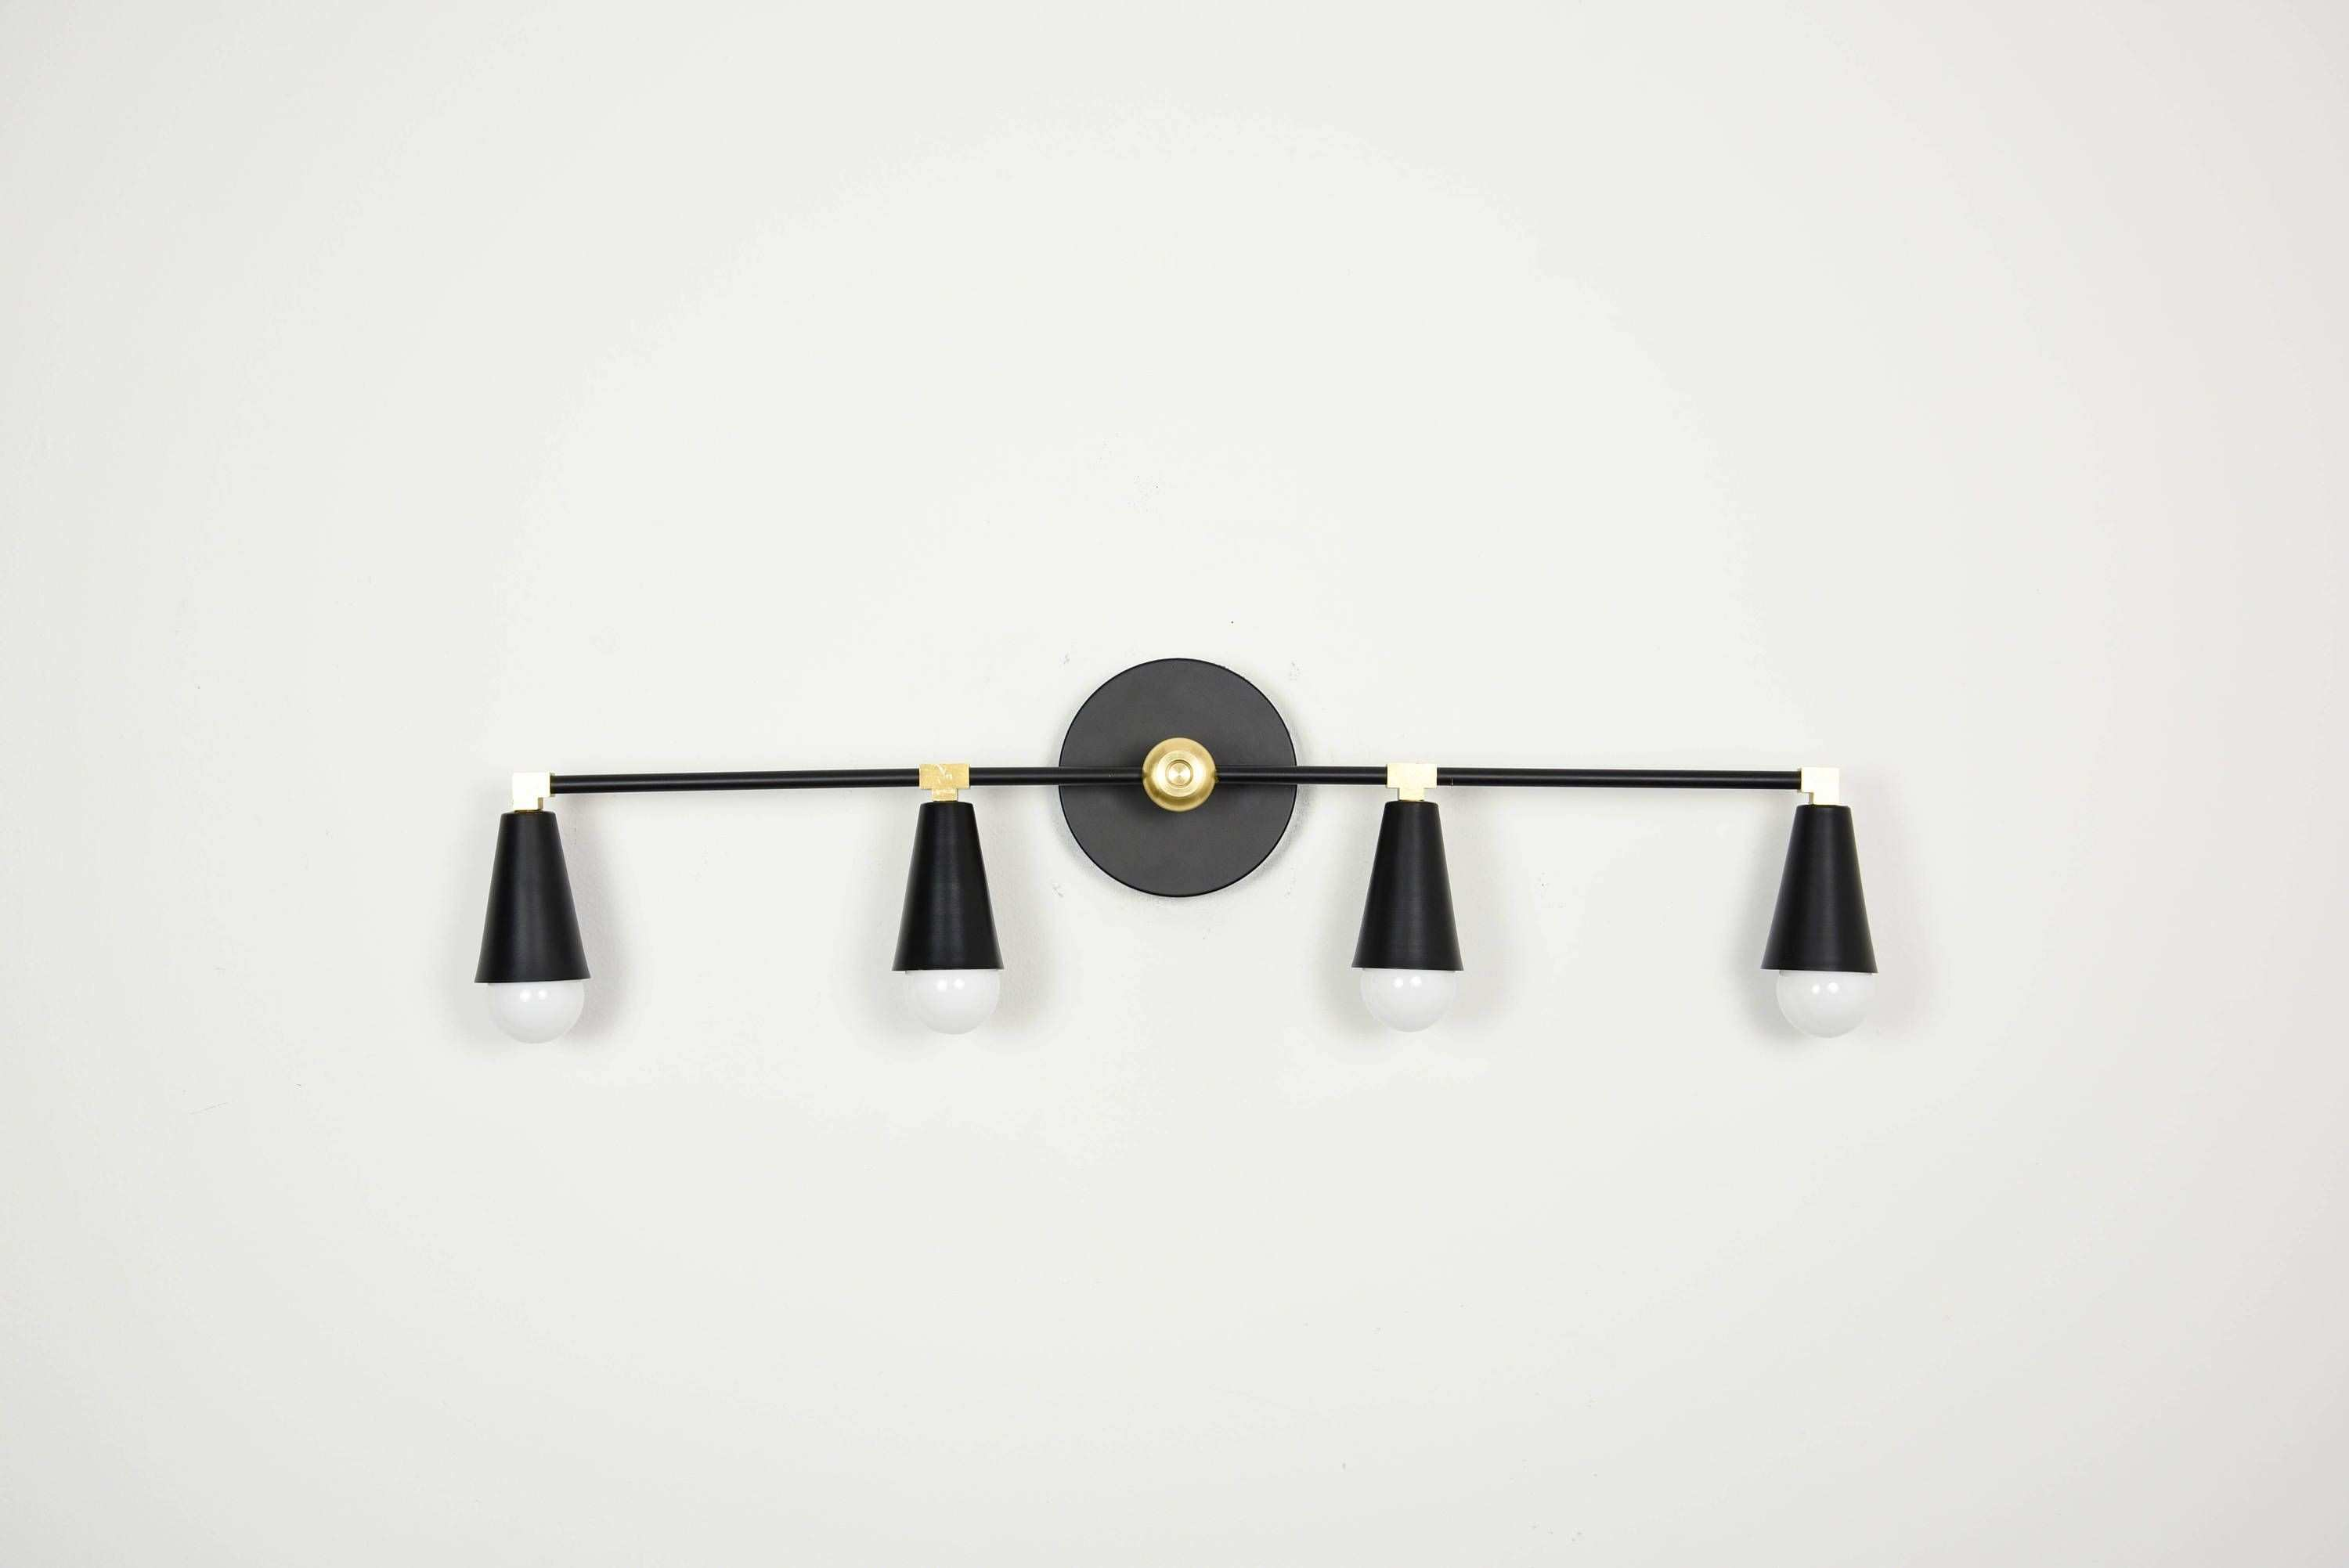 Wall Sconce Vanity 4 Light Wall Sconce Black and Brass Gold 4 Bulb